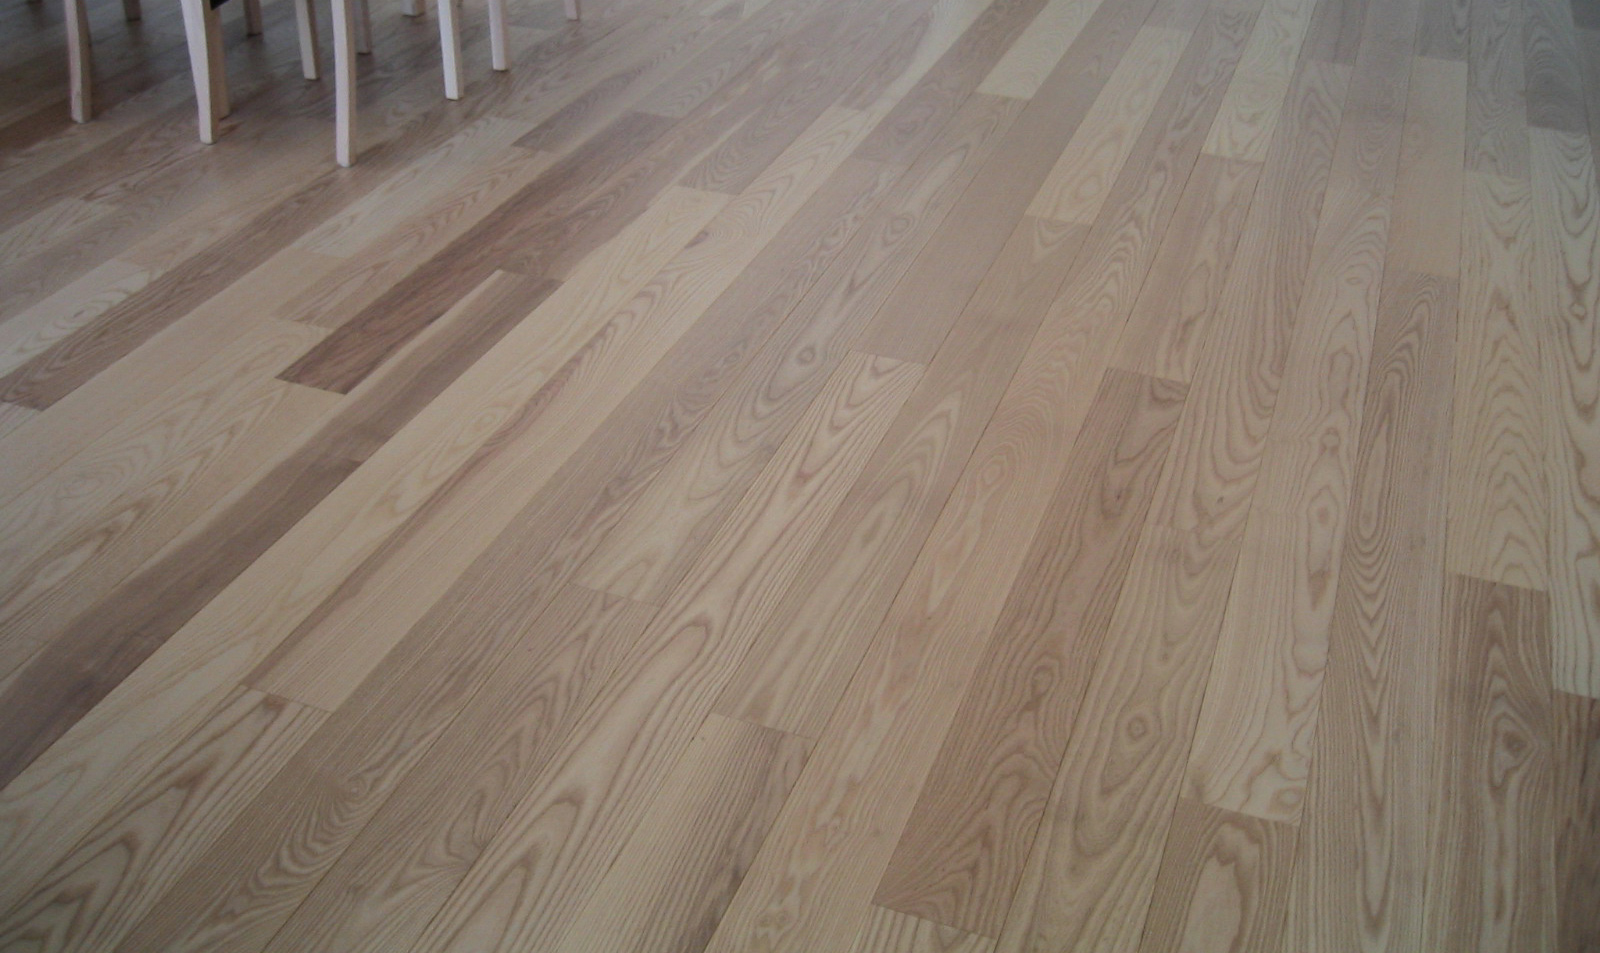 Ash flooring floors doors interior design for Solid hardwood flooring